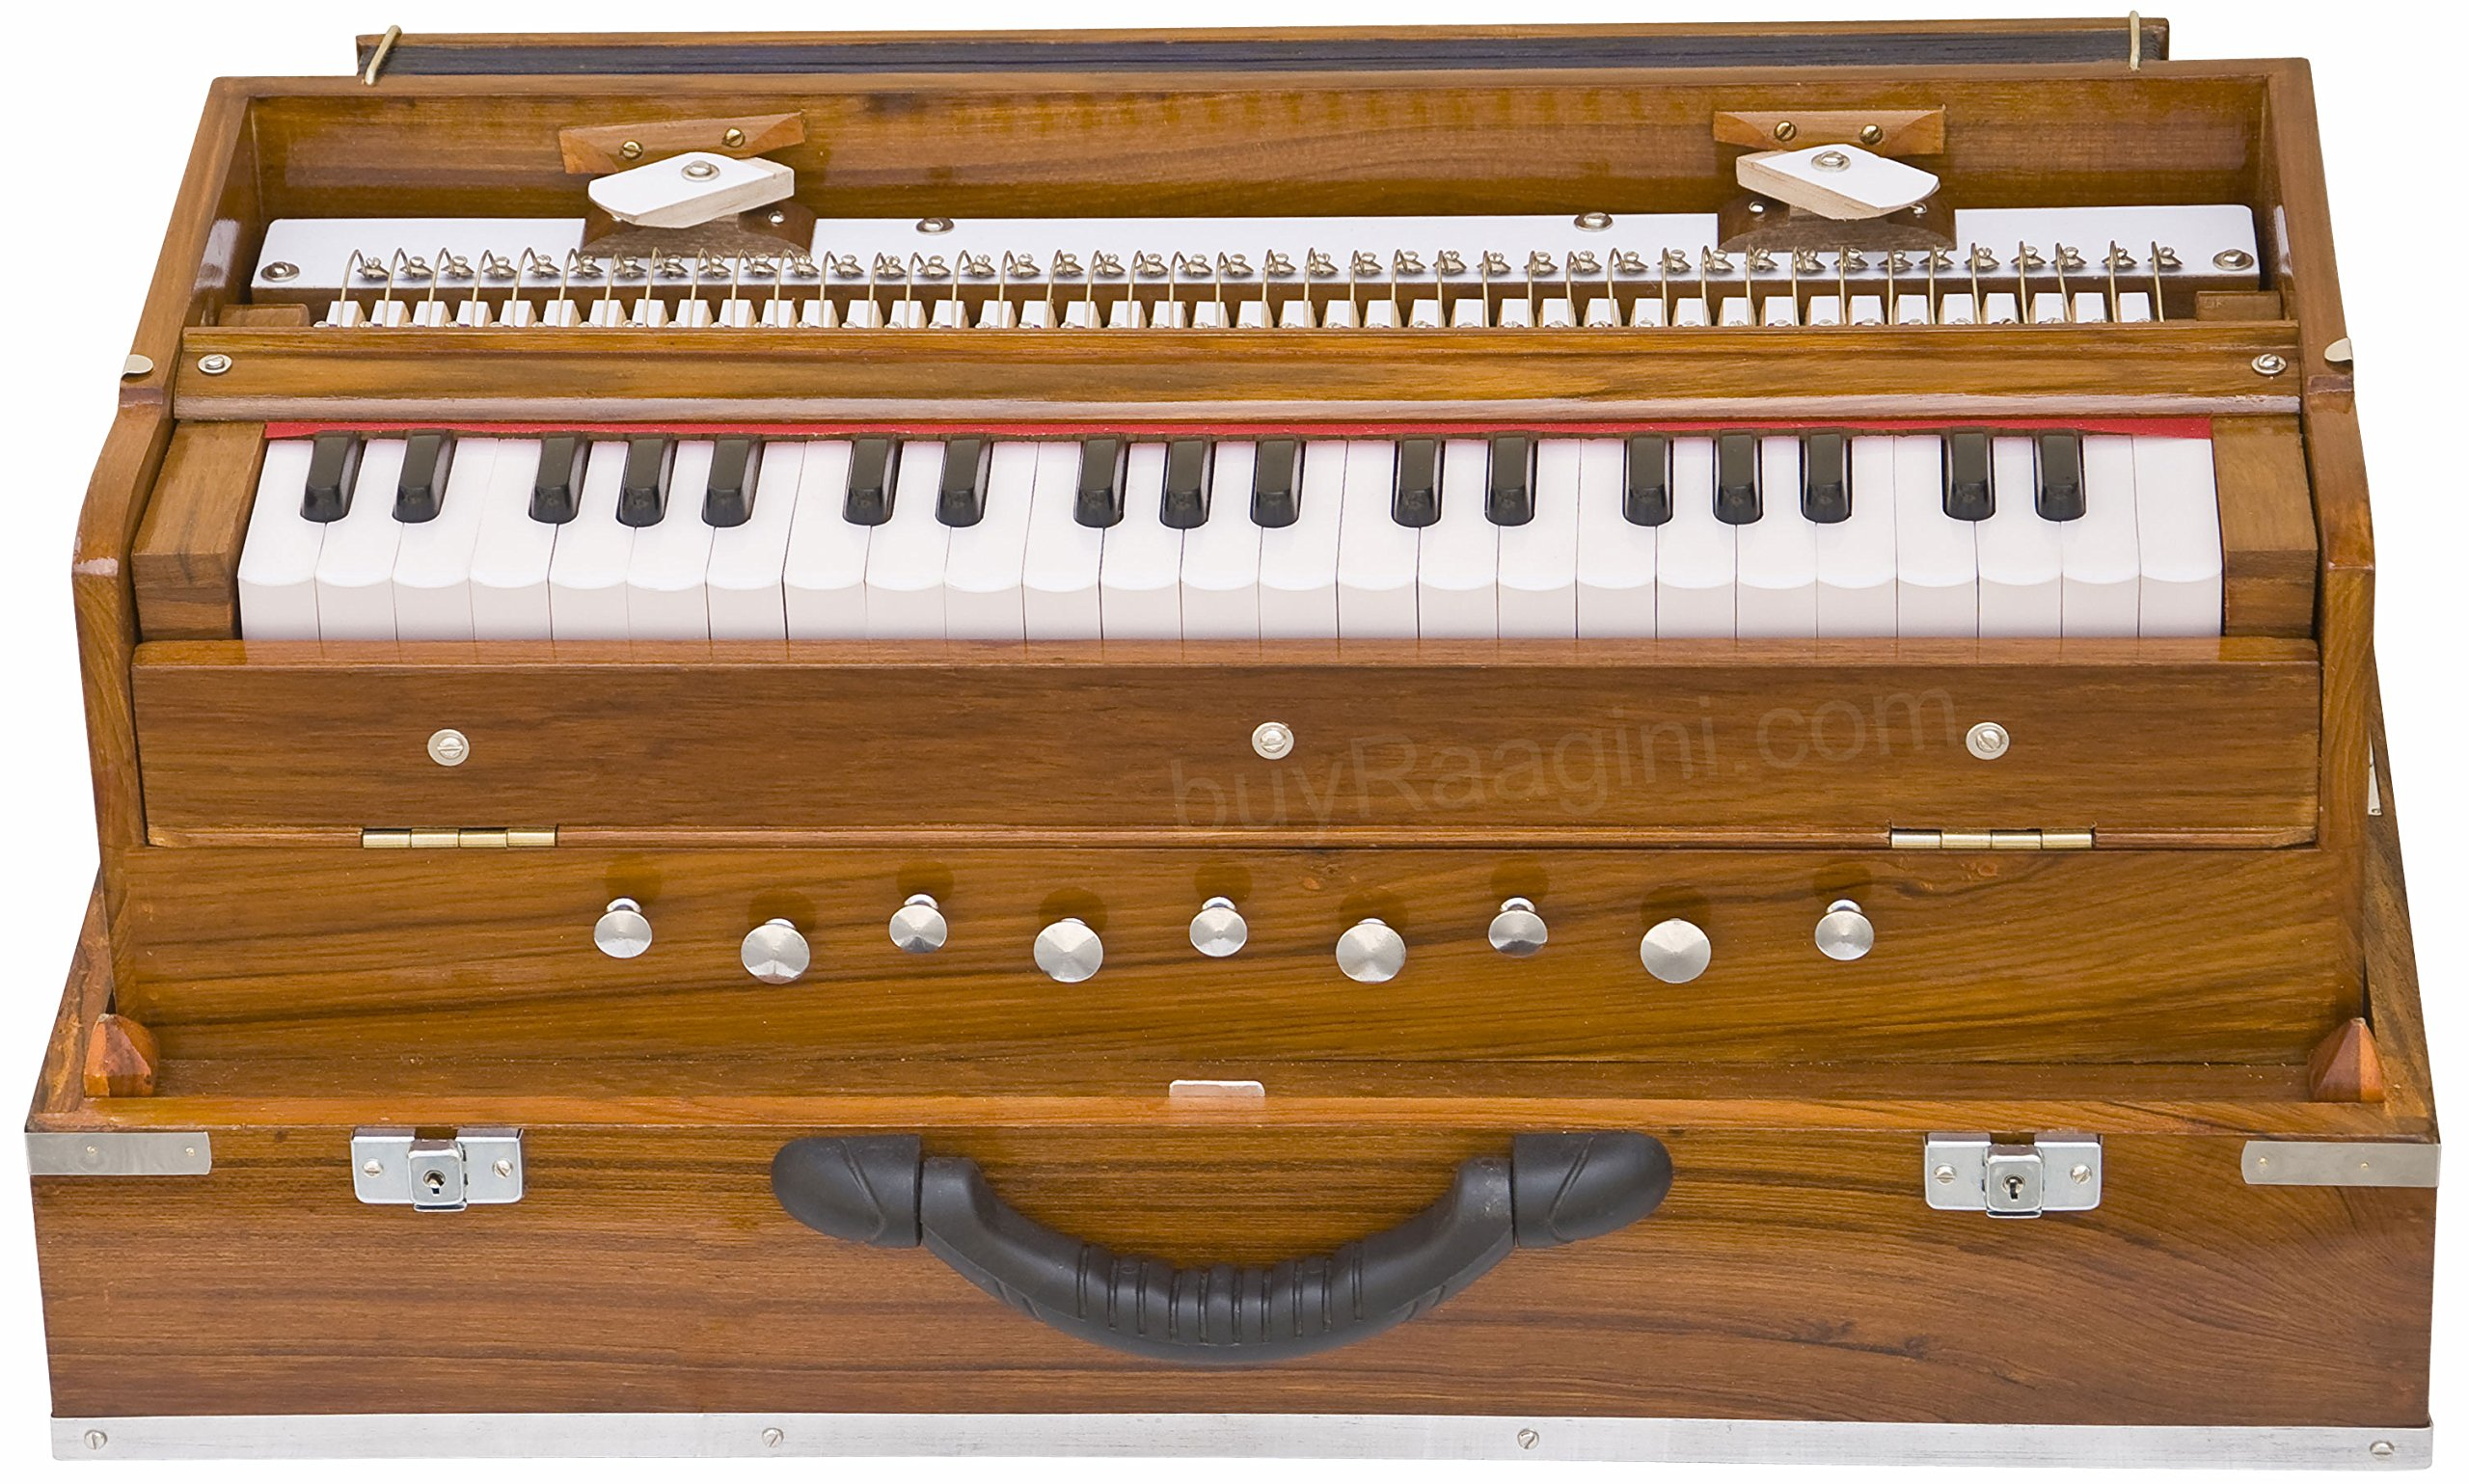 Monoj K Sardar MKS, Harmonium, In USA, Concert Quality, Folding, Special Double Reed, Natural Color, 9 Stop, 3 1/2 Octaves, Padded Bag, Book, Musical Instrument Indian (PDI-AFG) by MKS